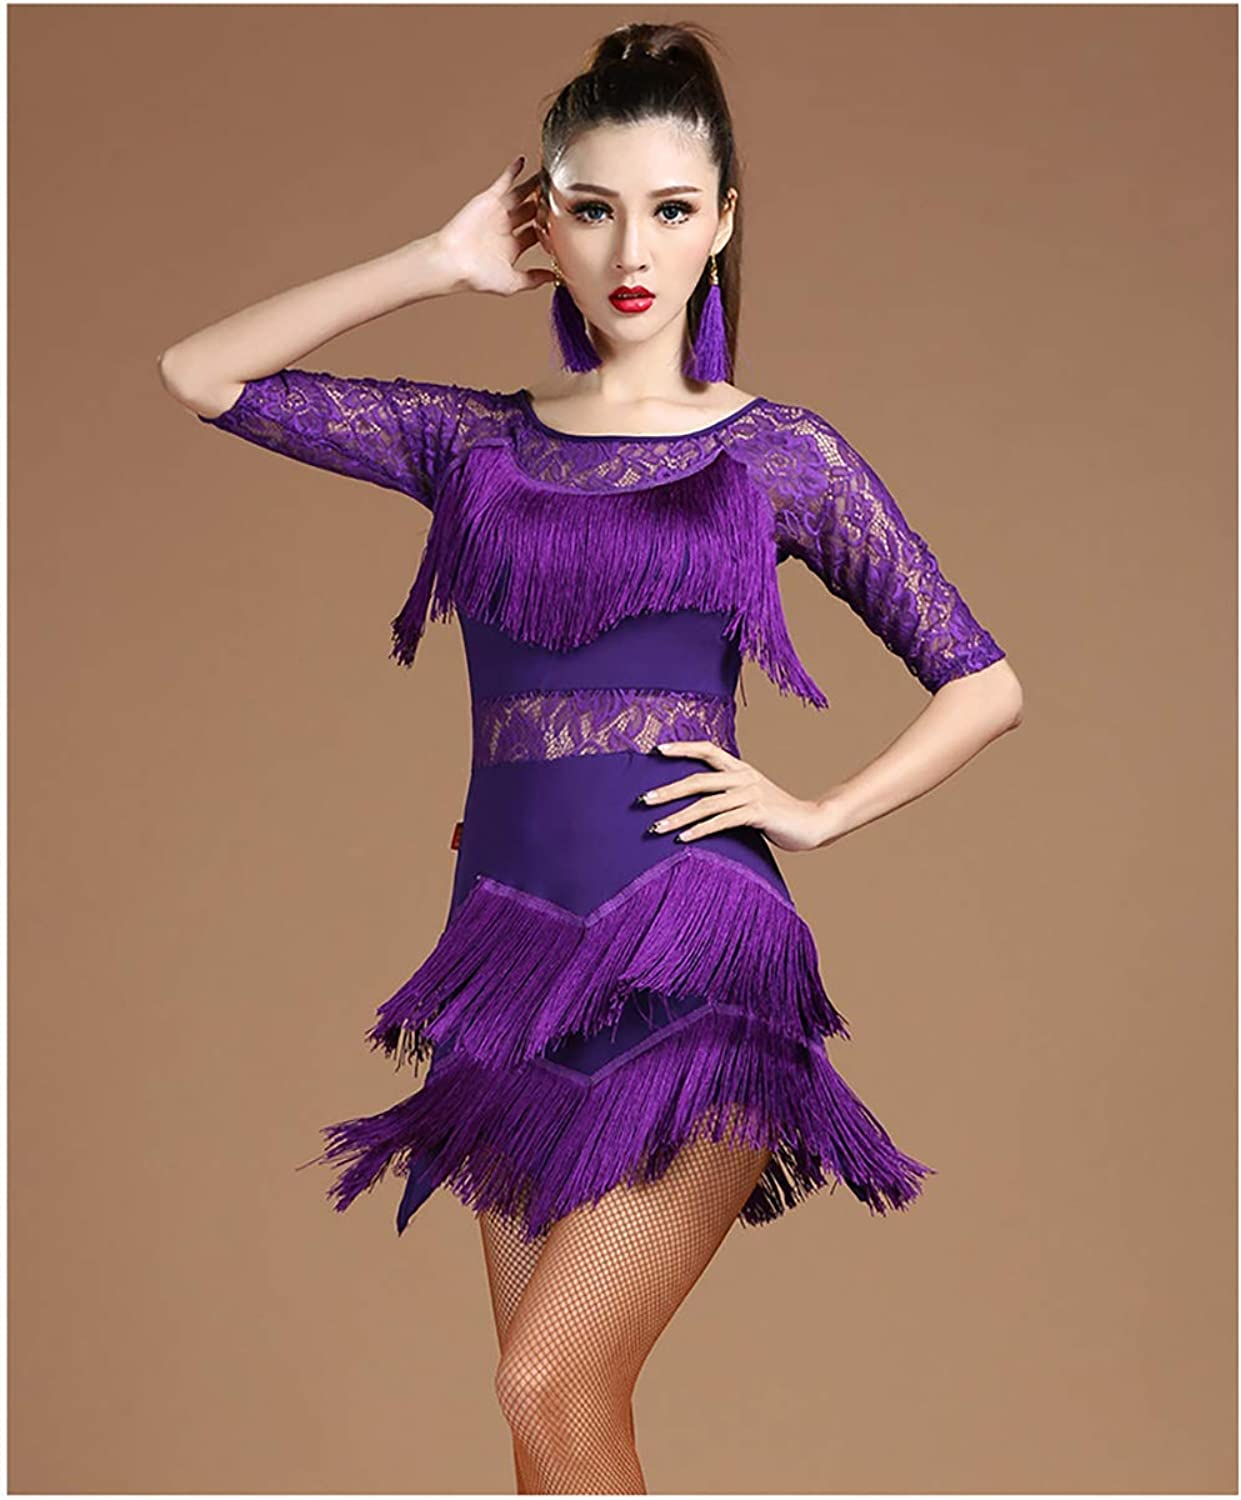 Women's Rhinestone Tassel Flapper Latin Rumba Dance Dress 2 Pieces Outfits with Shorts